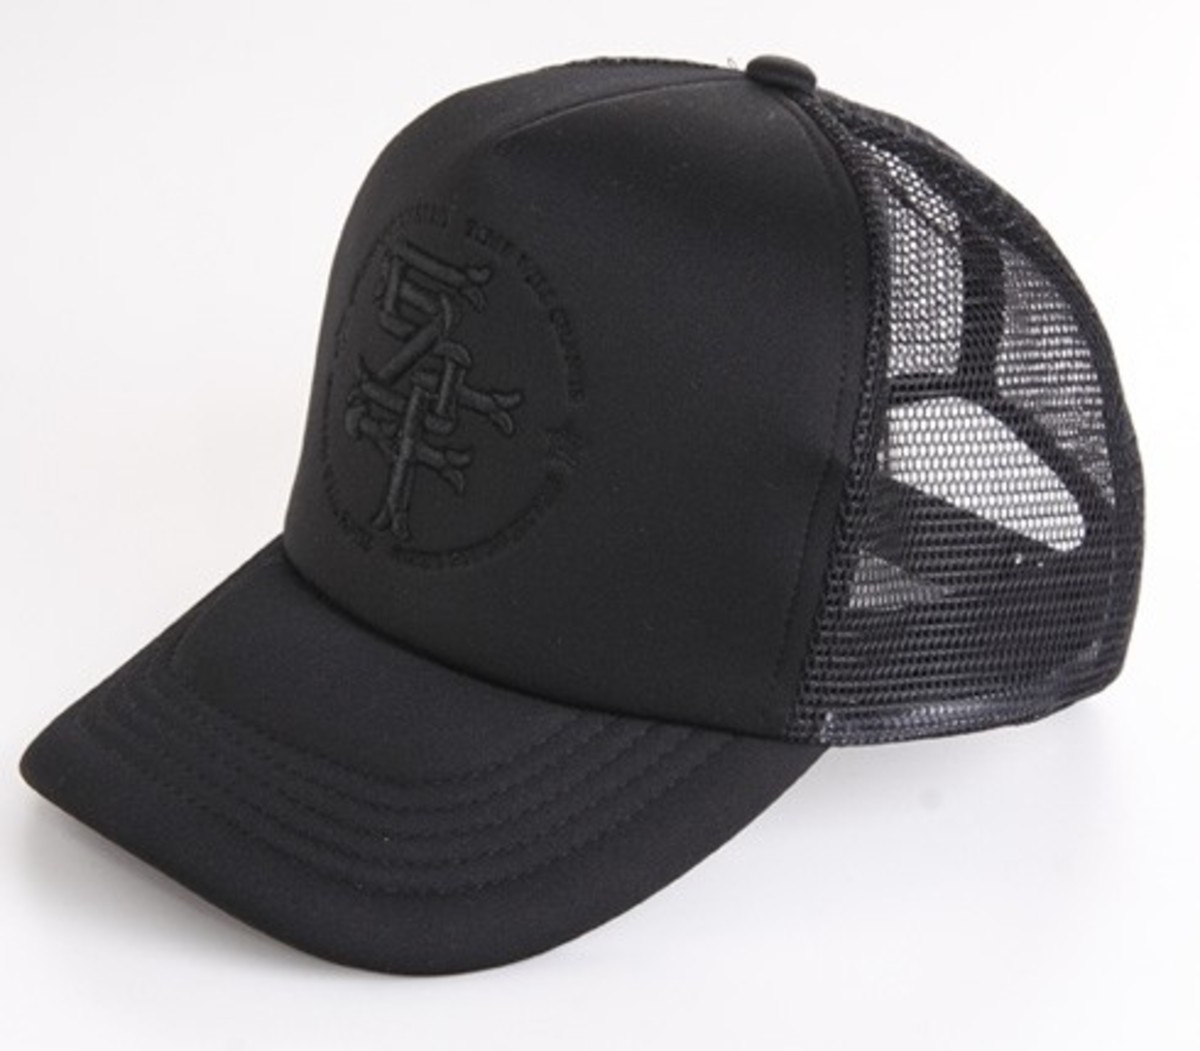 freshness-trucker-black-side.jpg